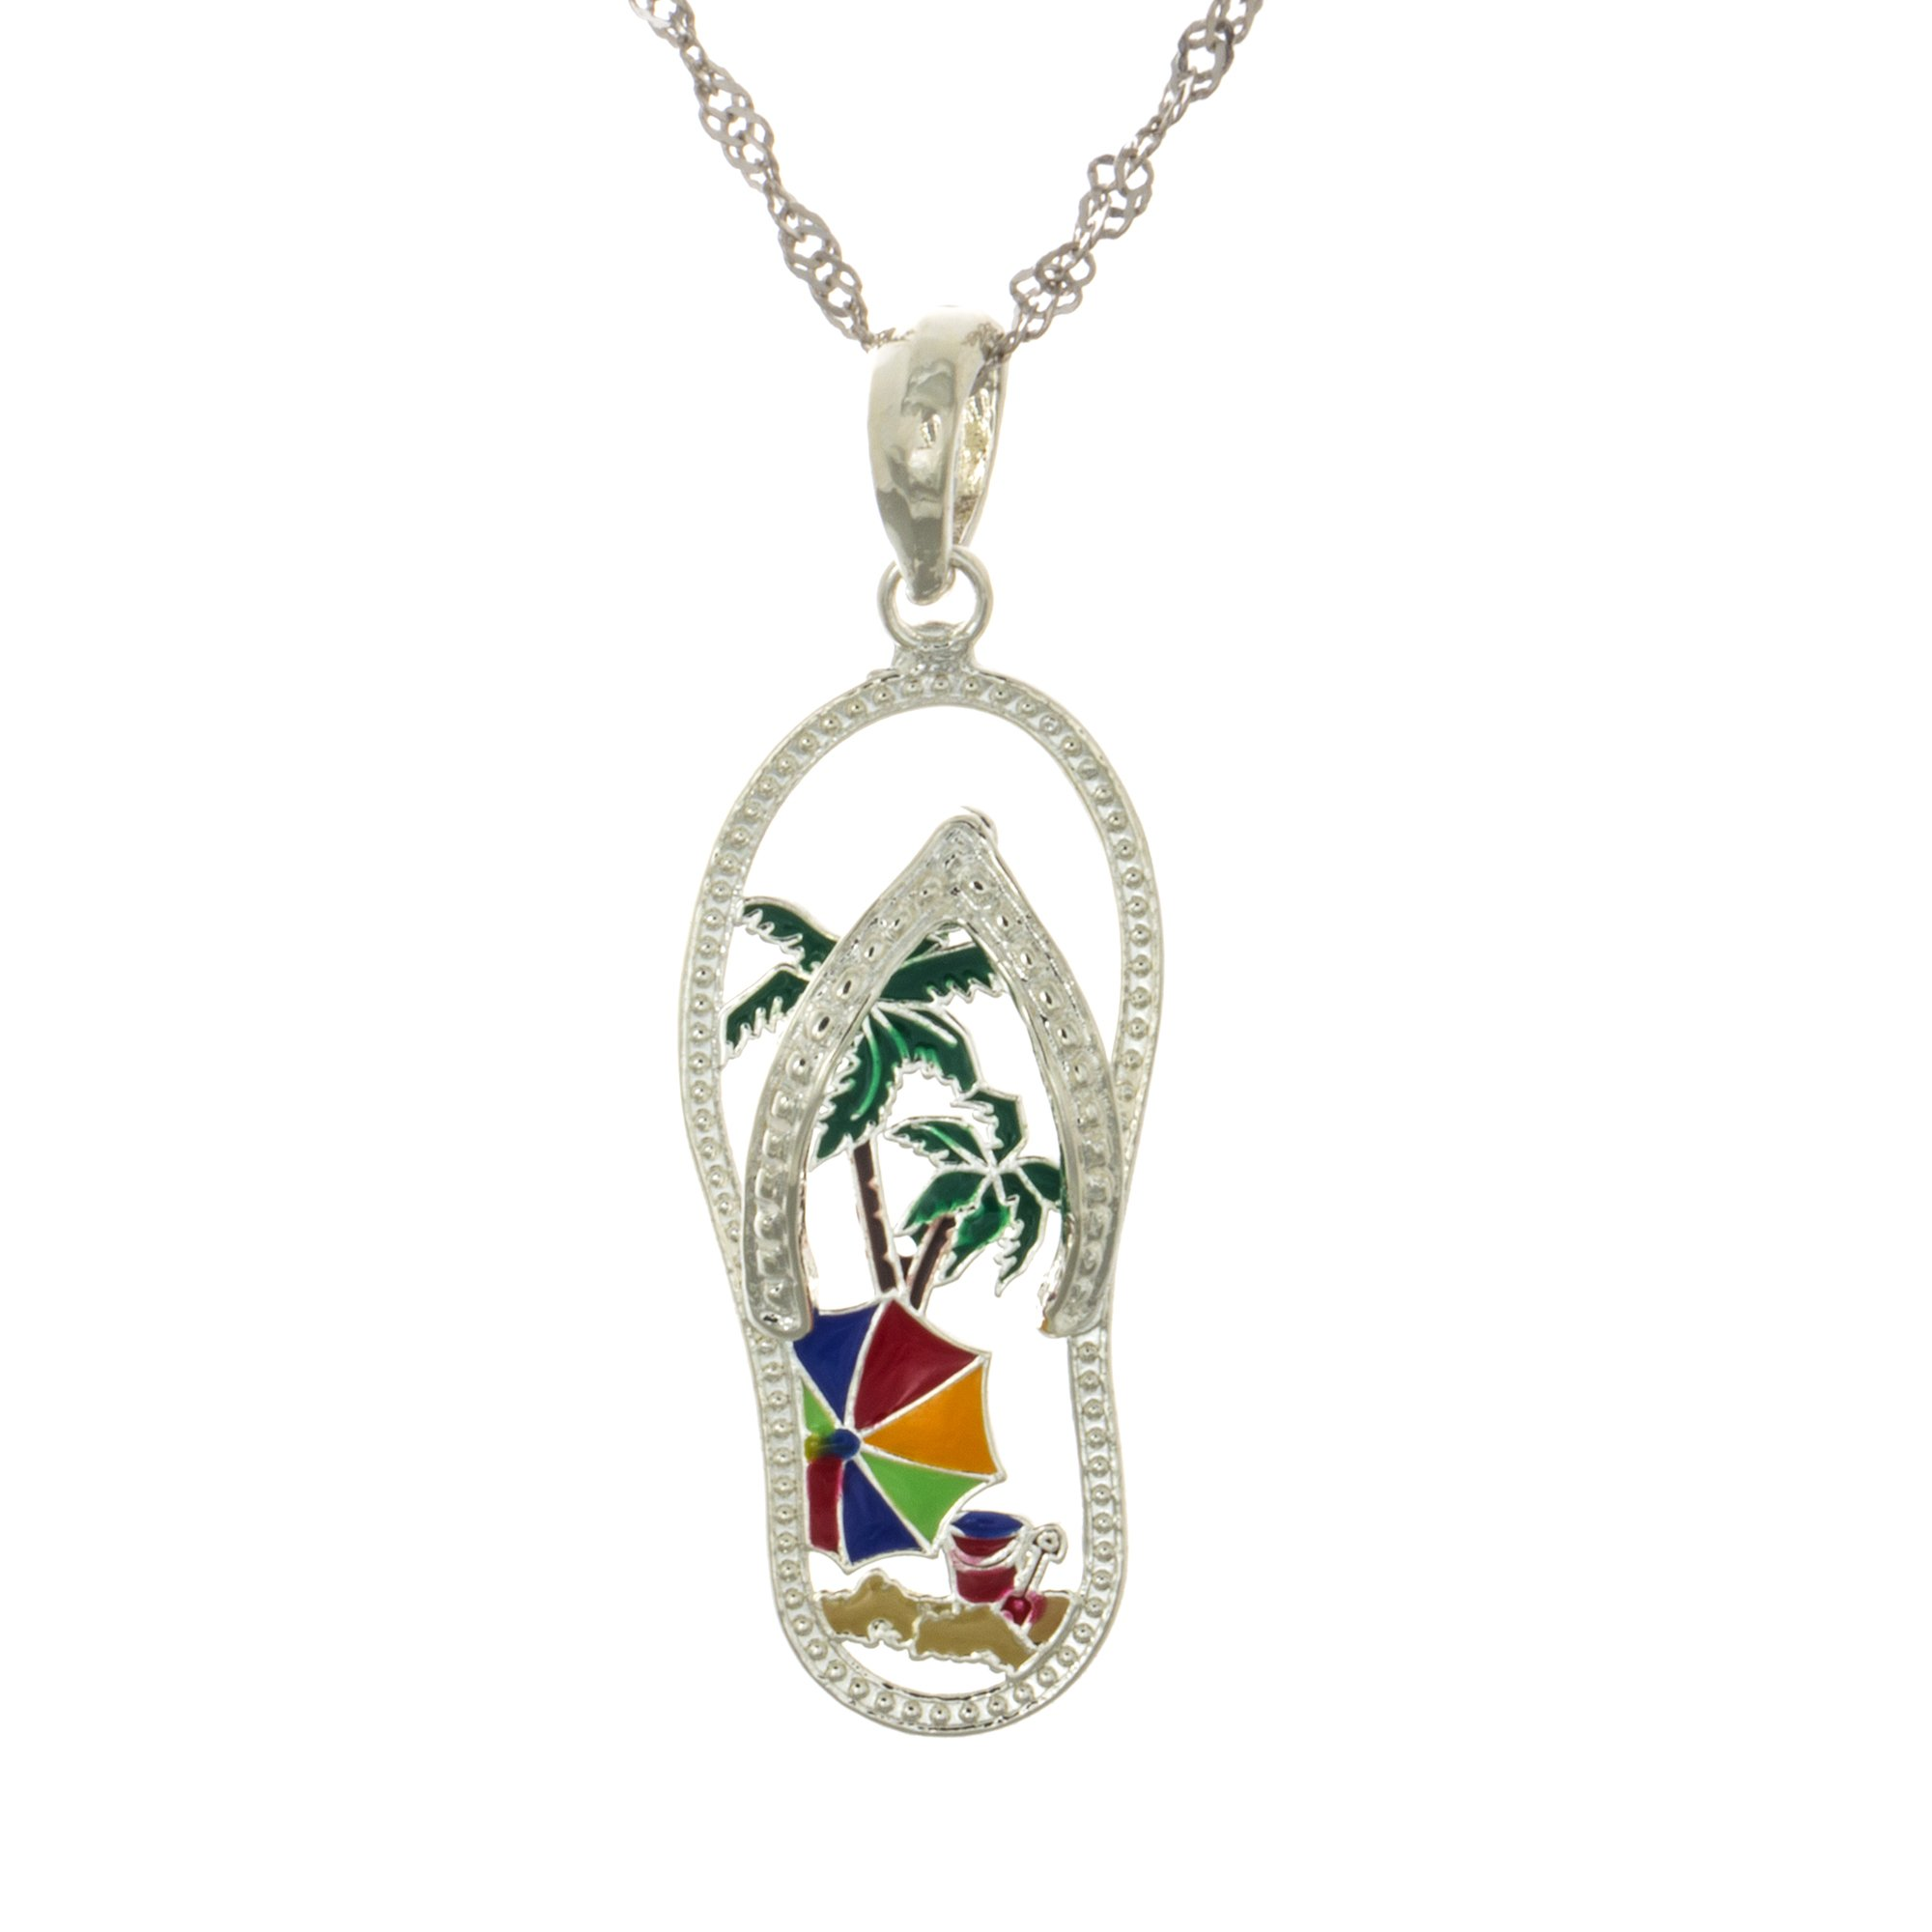 925 Sterling Silver Flip-Flop Necklace Charm Pendant with Chain, Beach Scene Palm Tree Cut-out, Enamel